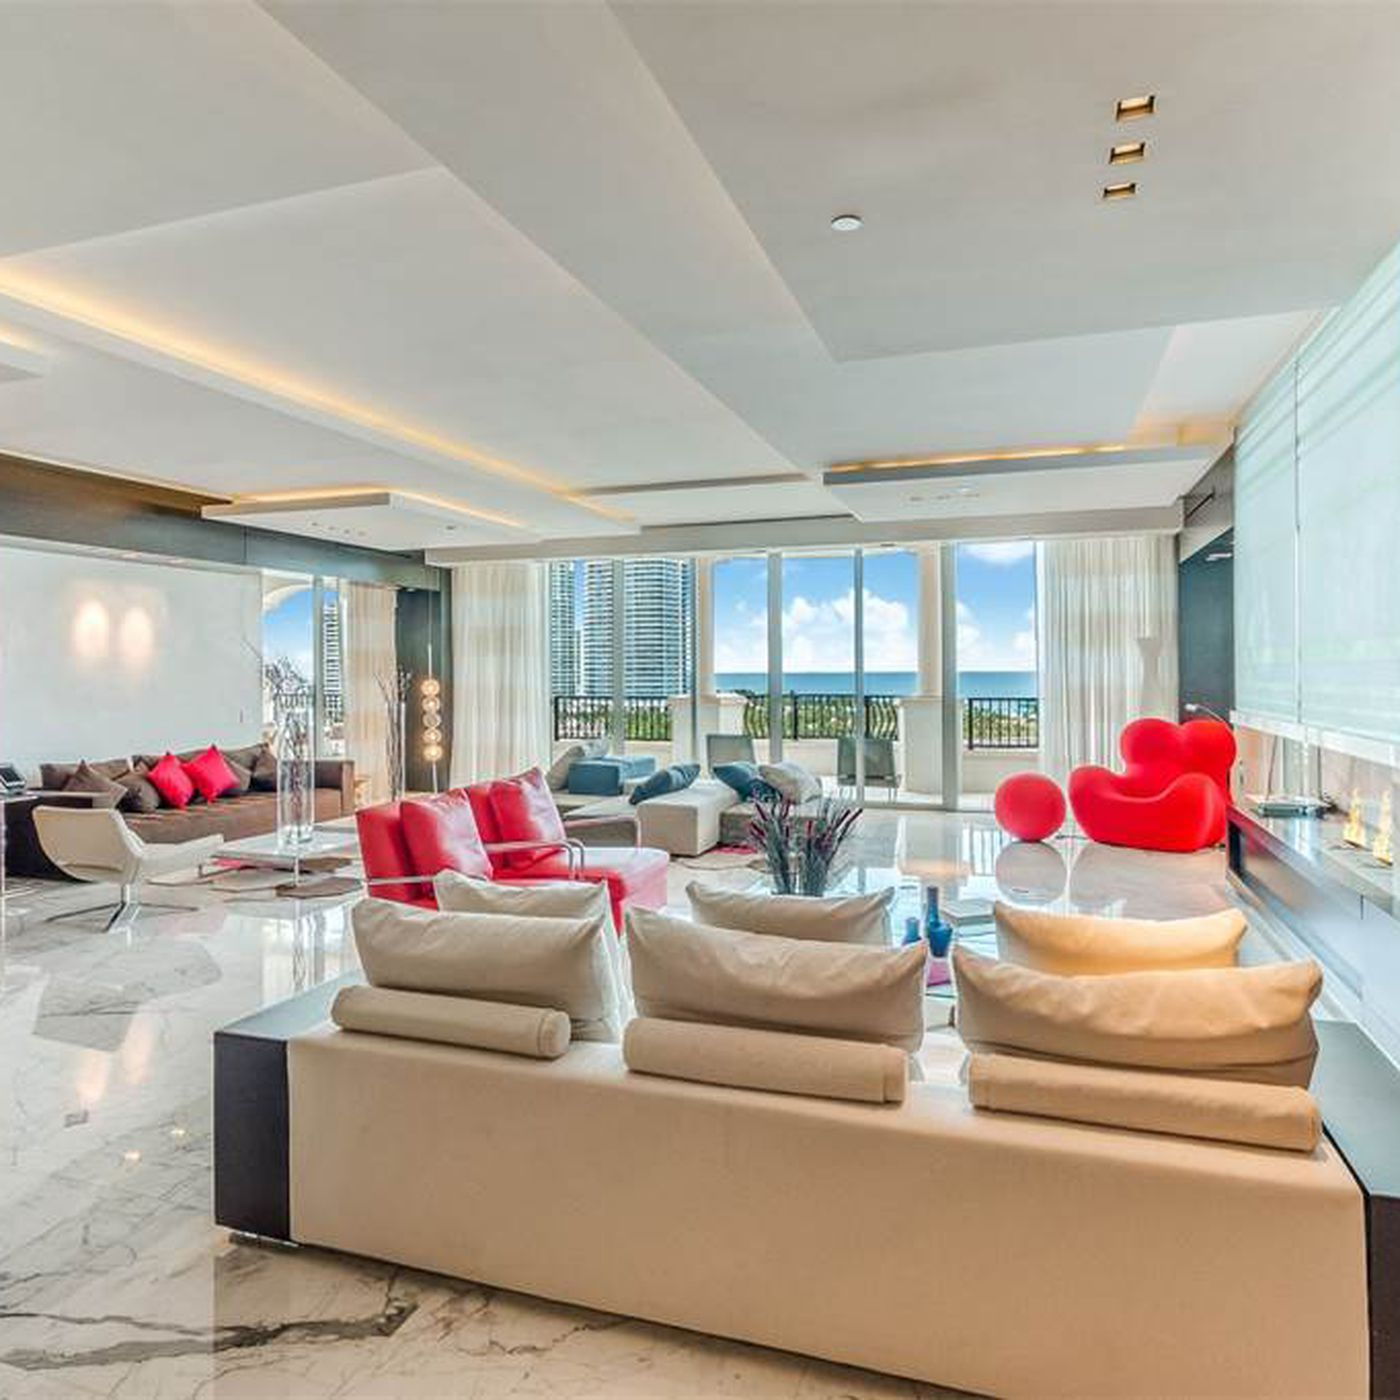 Extravagant Fisher Island penthouse asks $15M - Curbed Miami